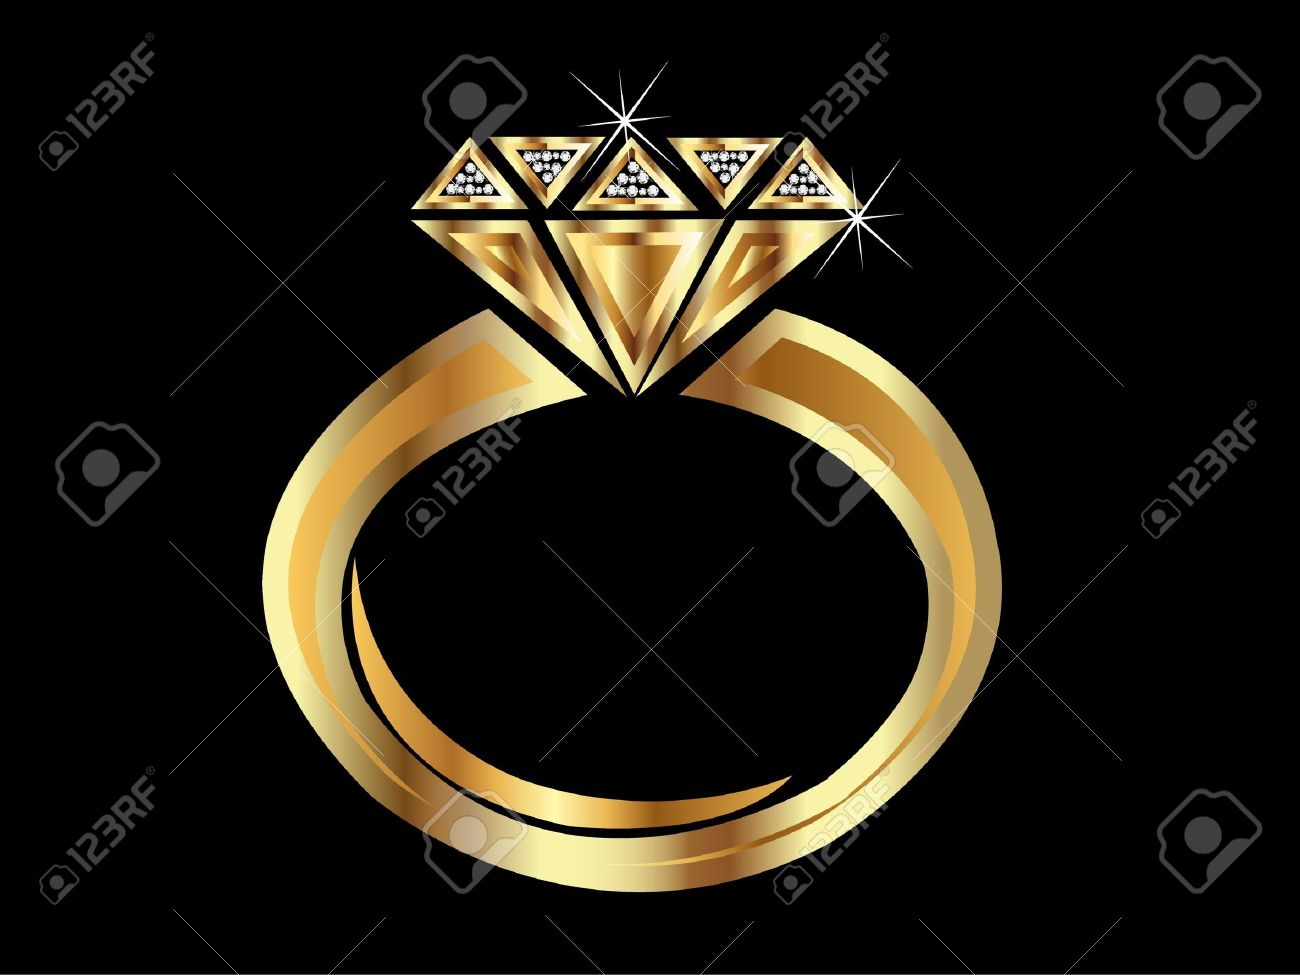 diamond free with background vector marble image royalty golden